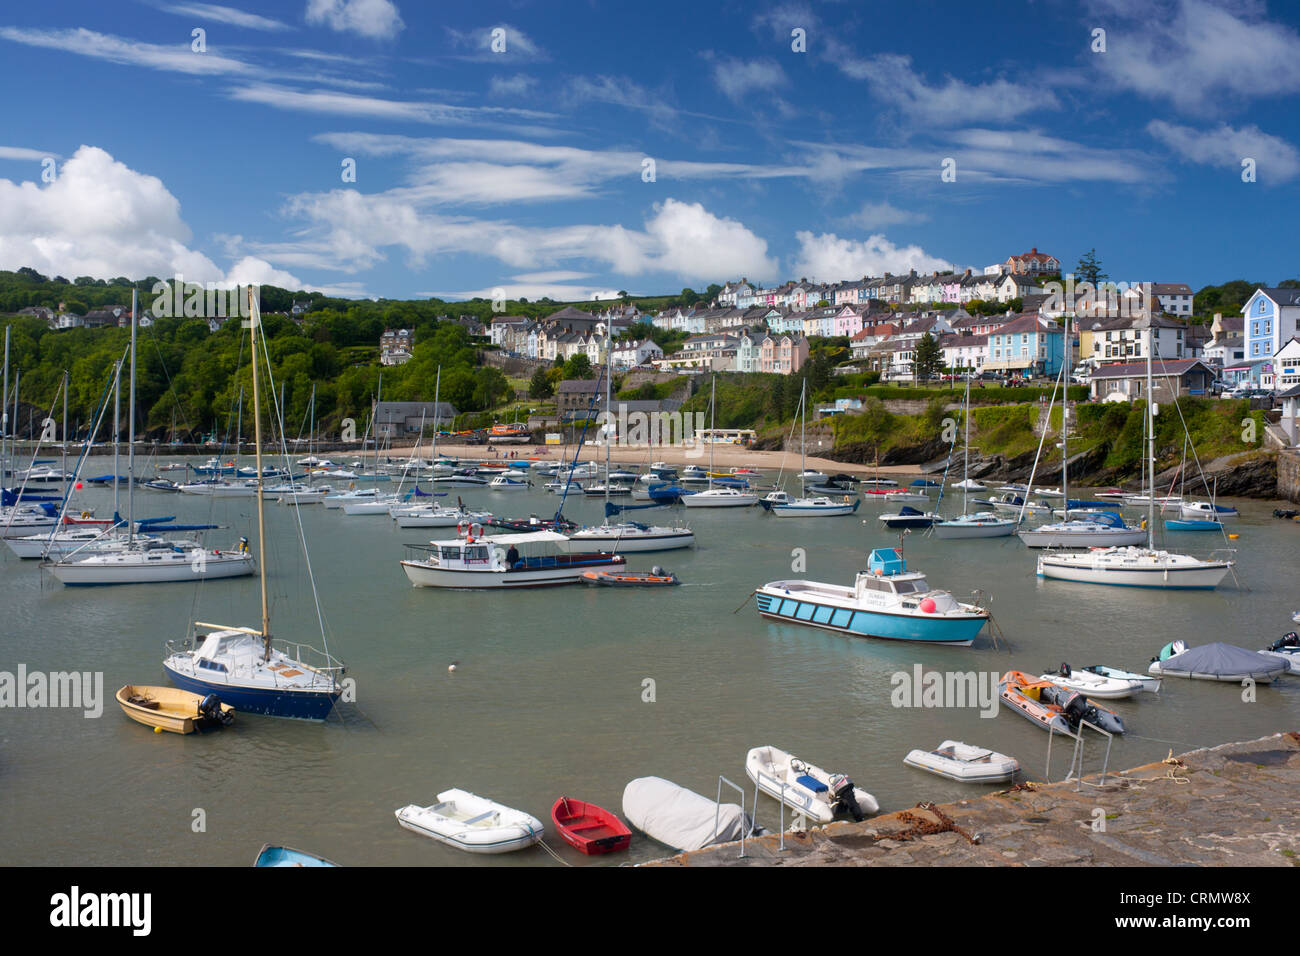 New Quay harbour at high tide with boats and colourful terraced houses on hill behind Ceredigion Mid Wales UK - Stock Image